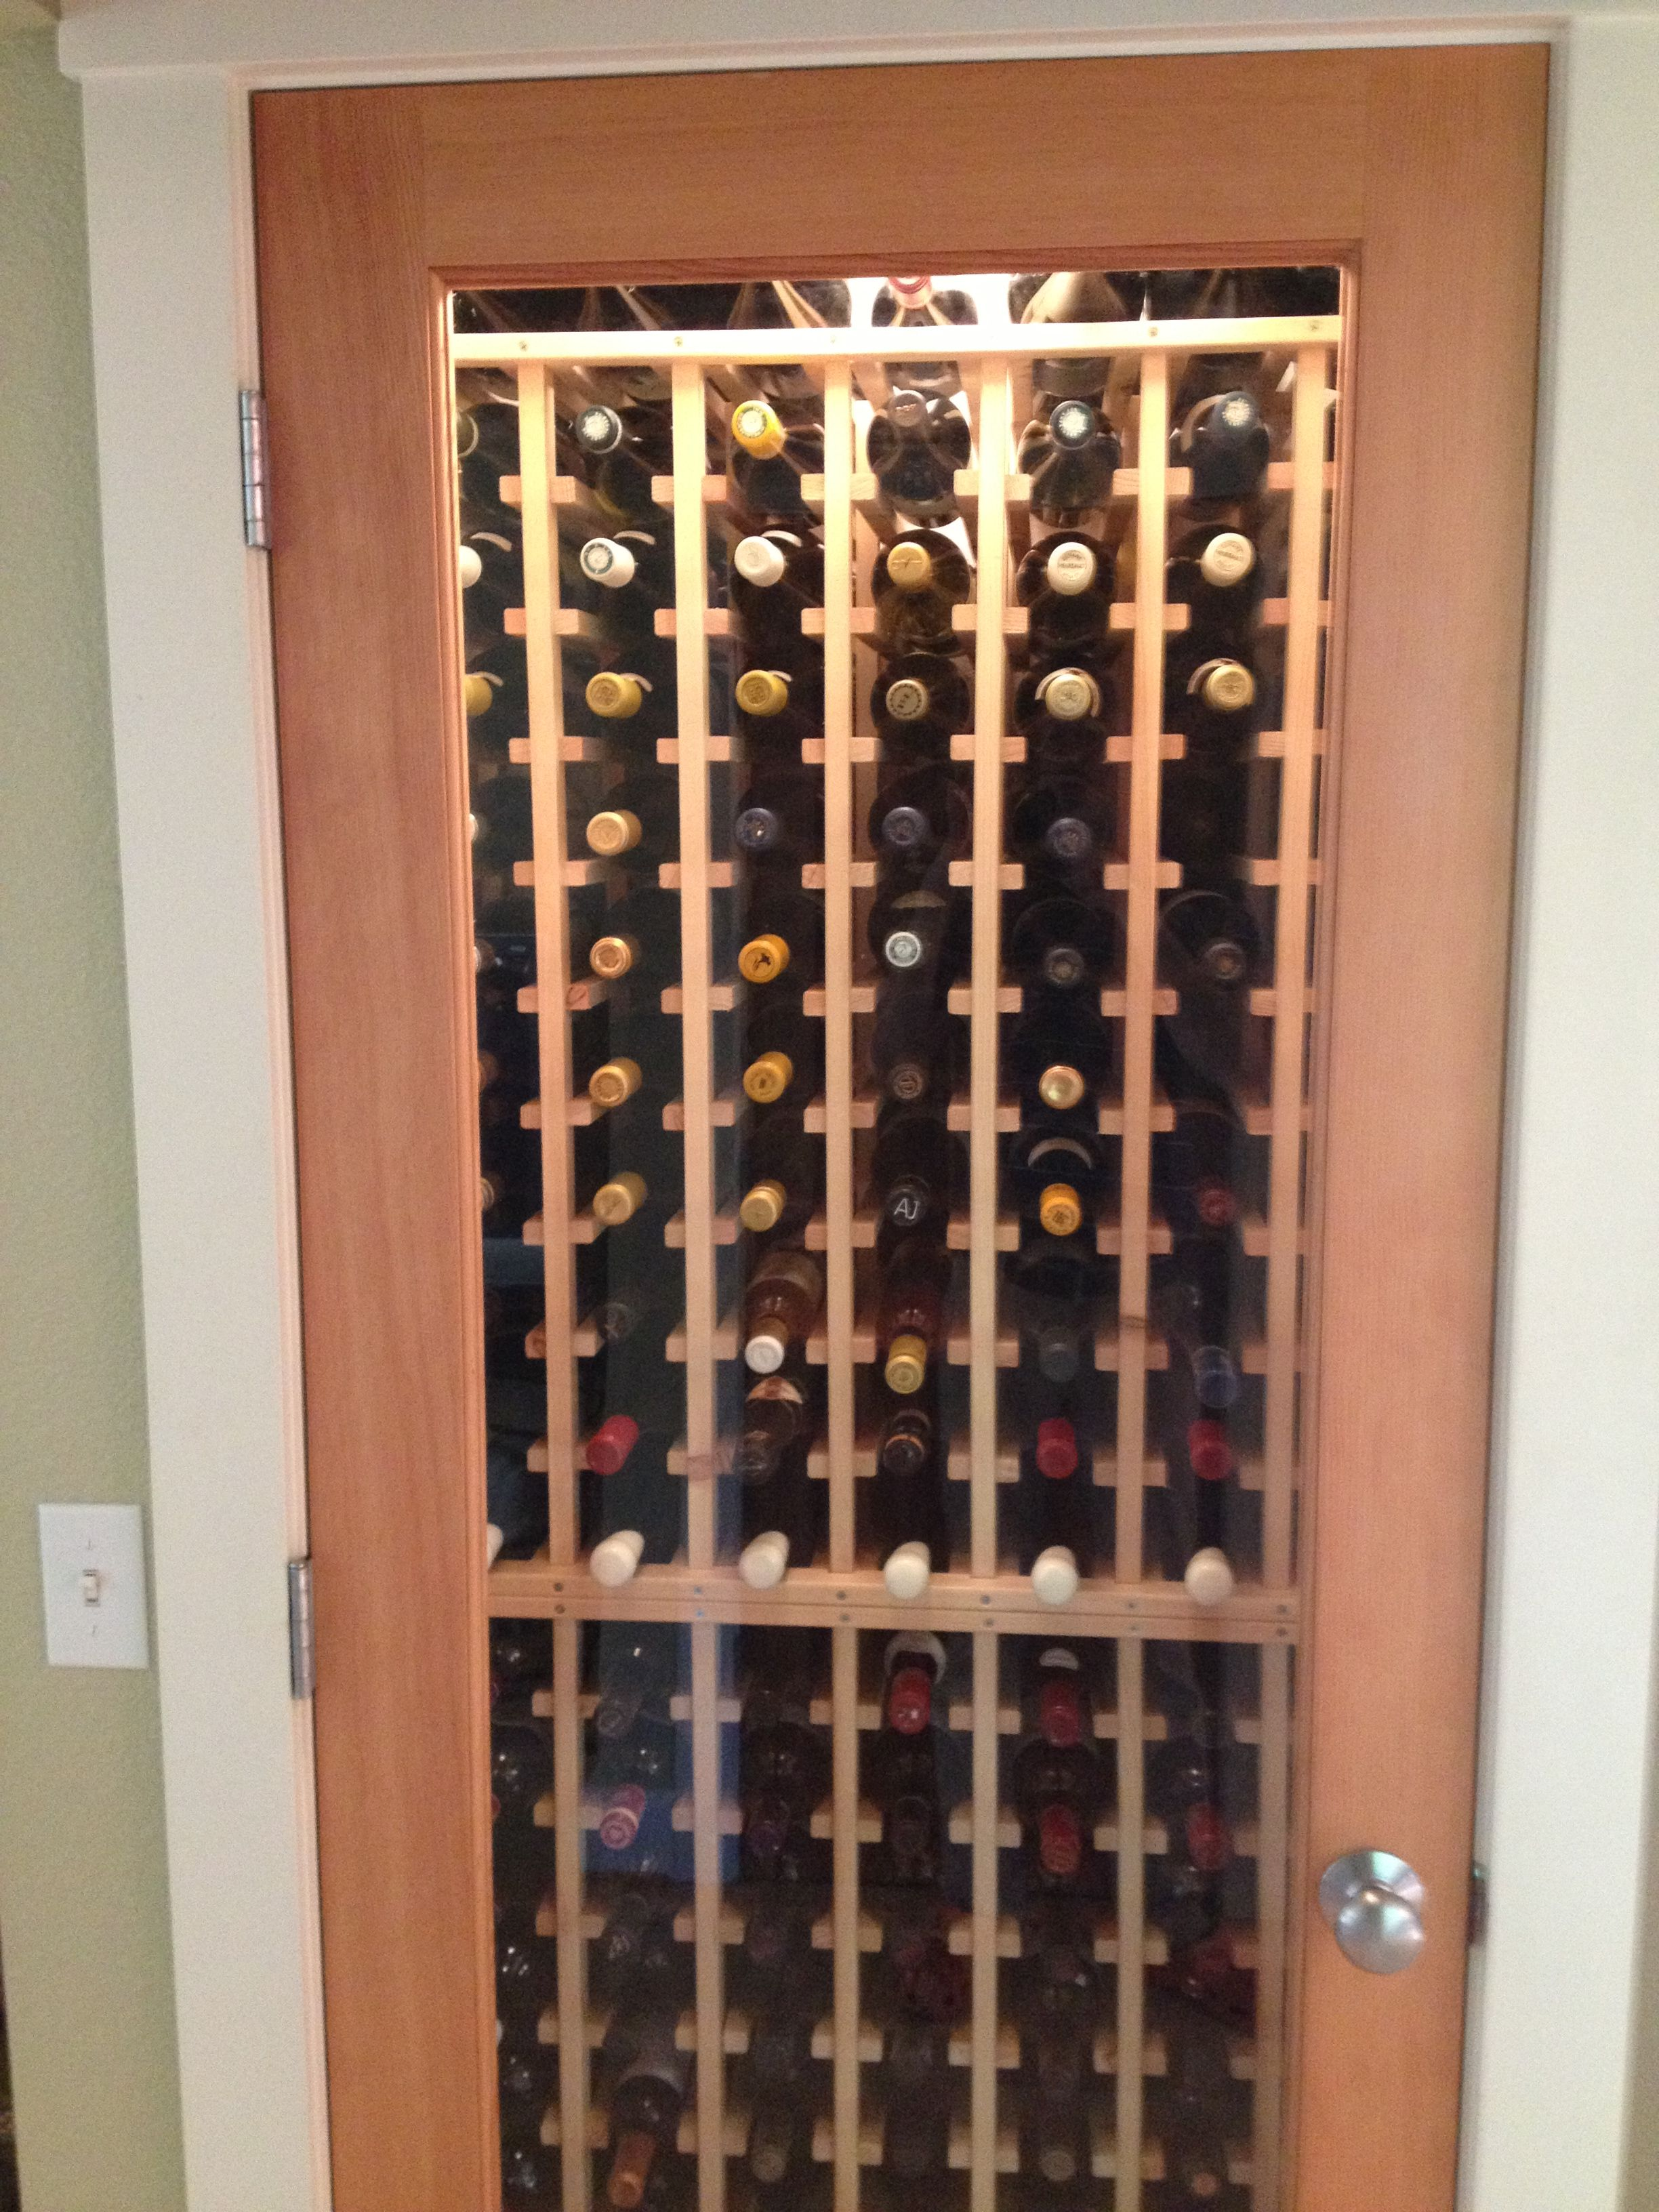 no space is too small for a wine cellar! here is a customer's closet